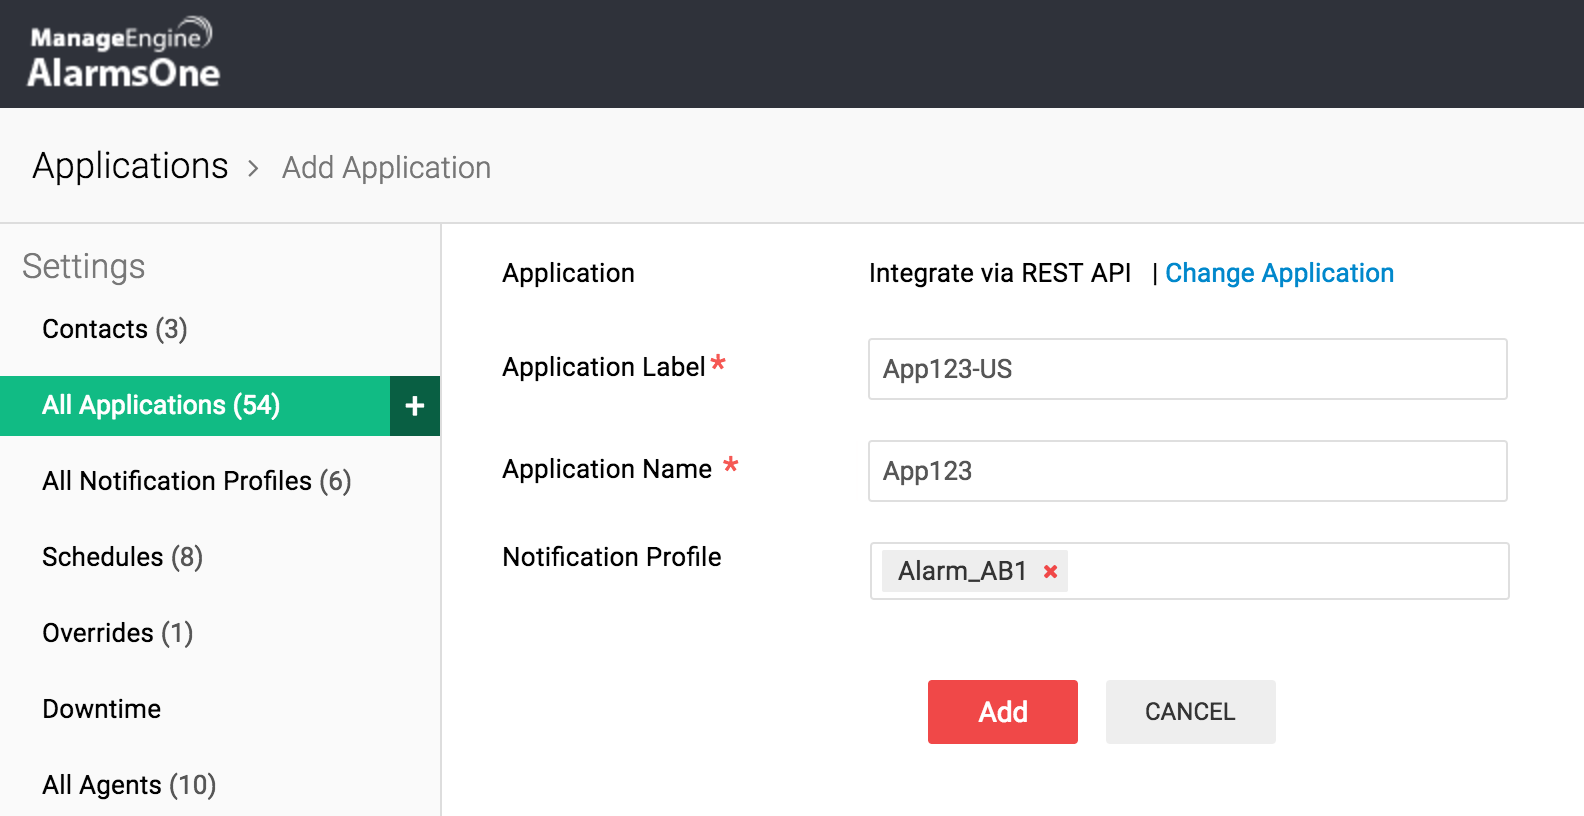 Custom API integrates in-house apps with AlarmsOne